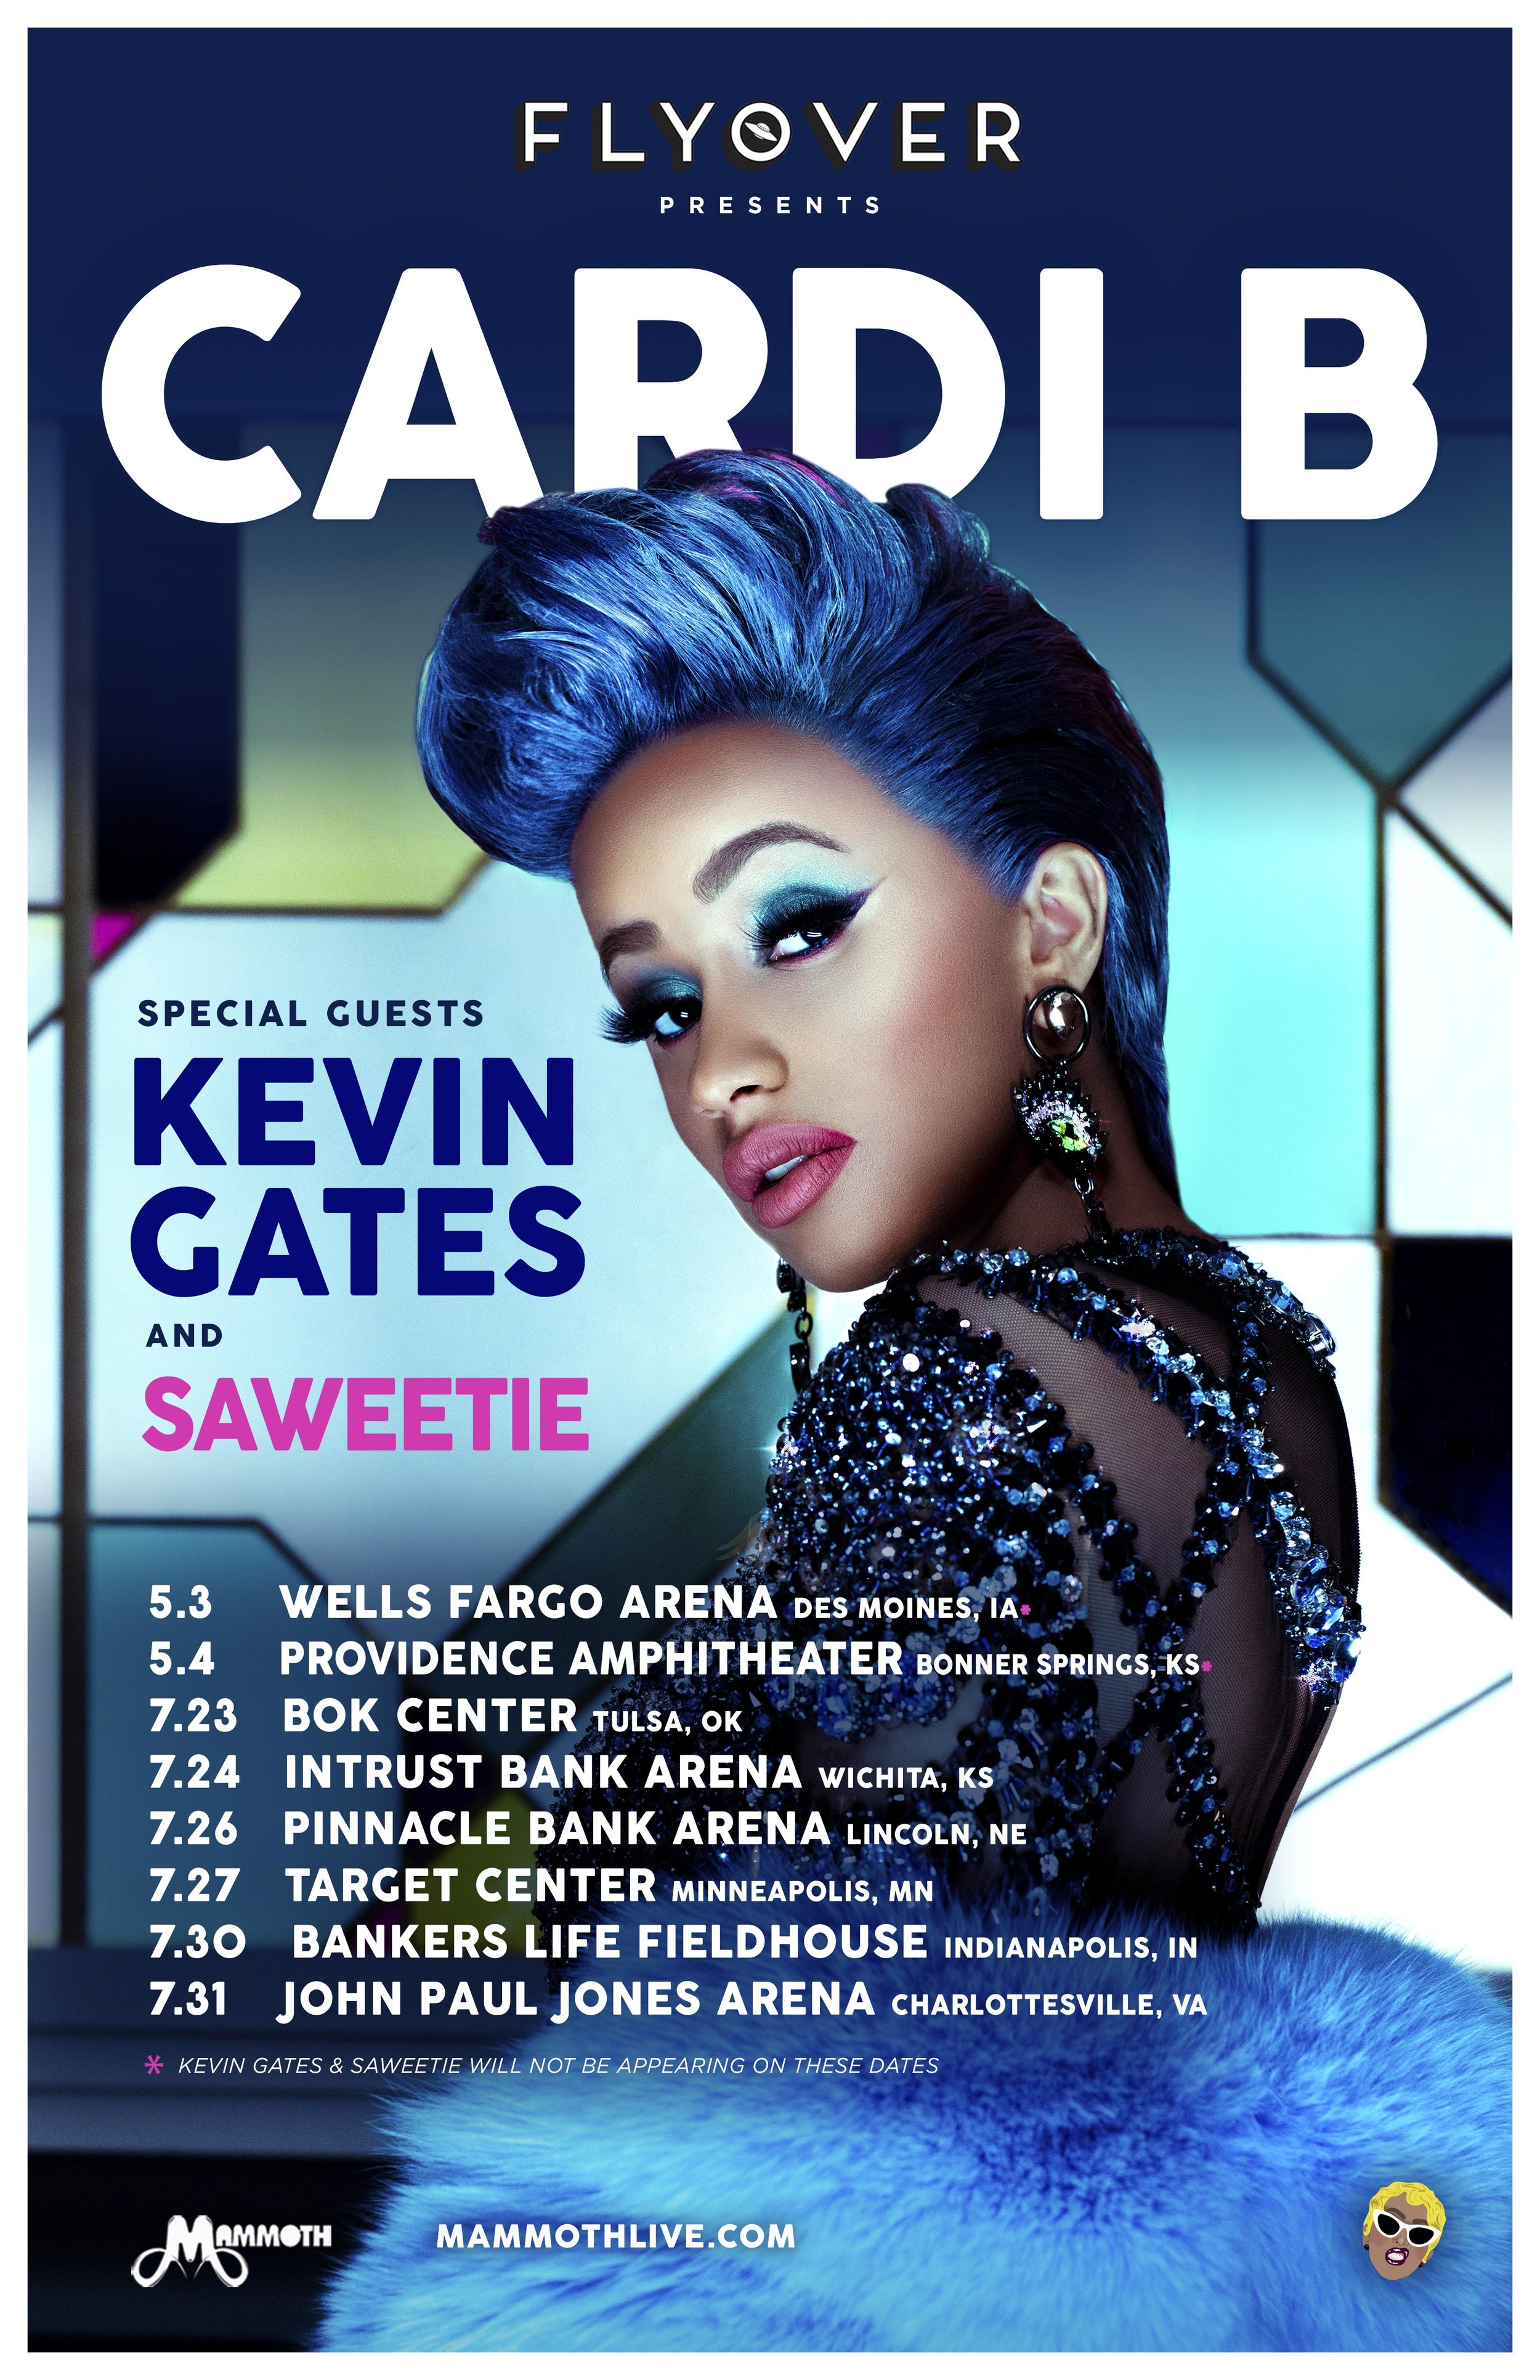 CardiB Updated Flyer 2.jpg